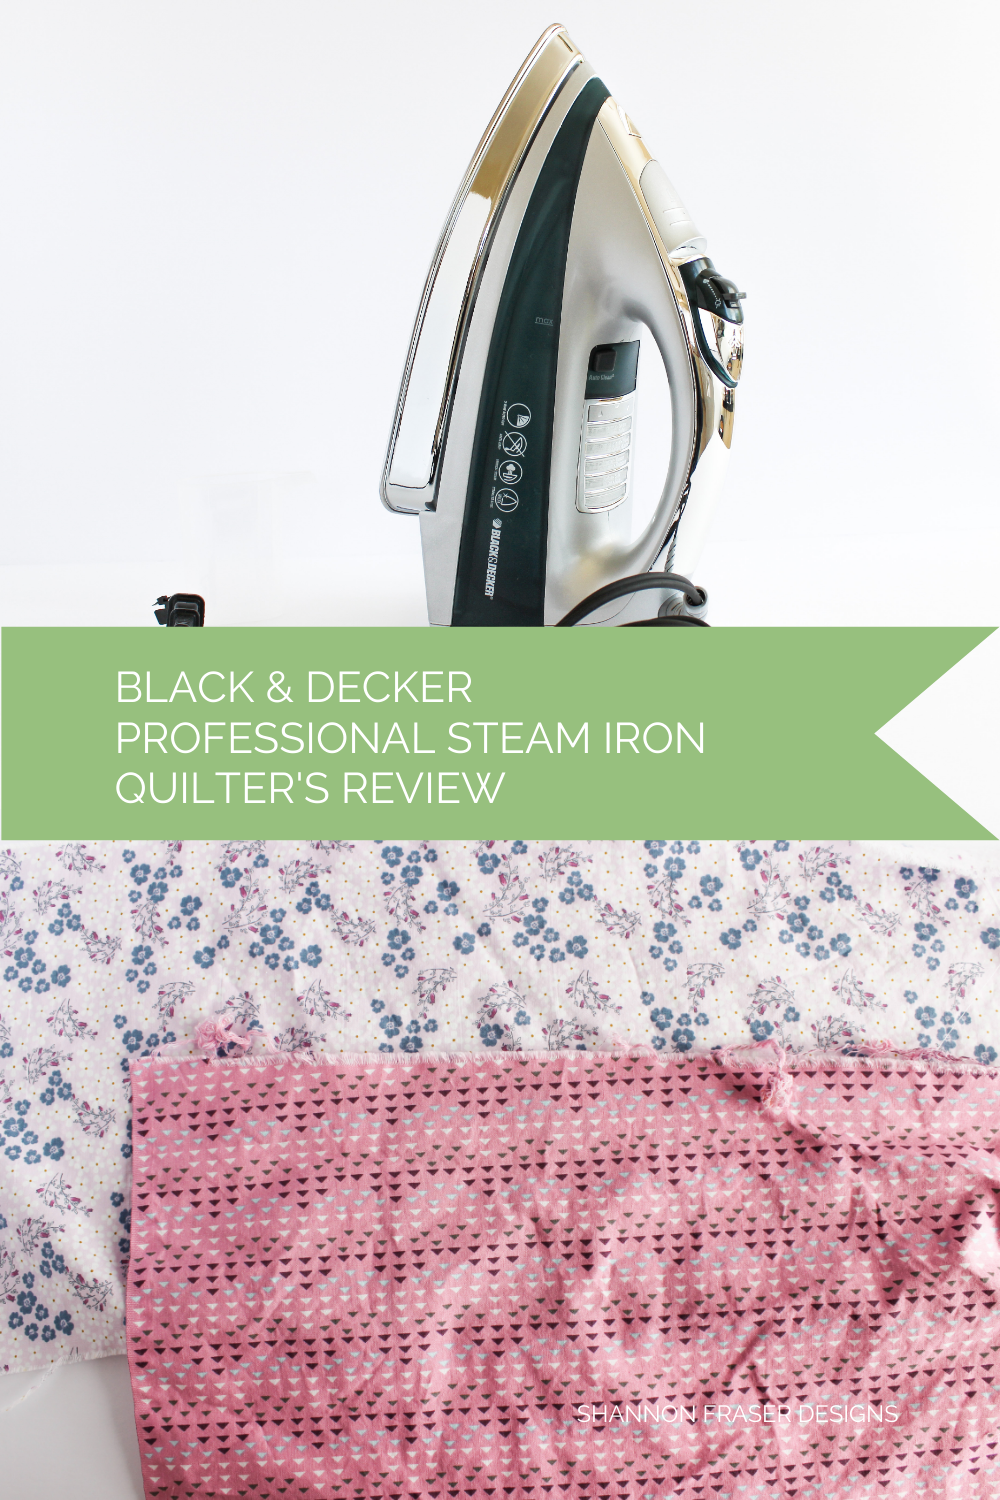 Black and Decker Professional Steam Iron with 2 fat quarters post laundered and pre-ironed